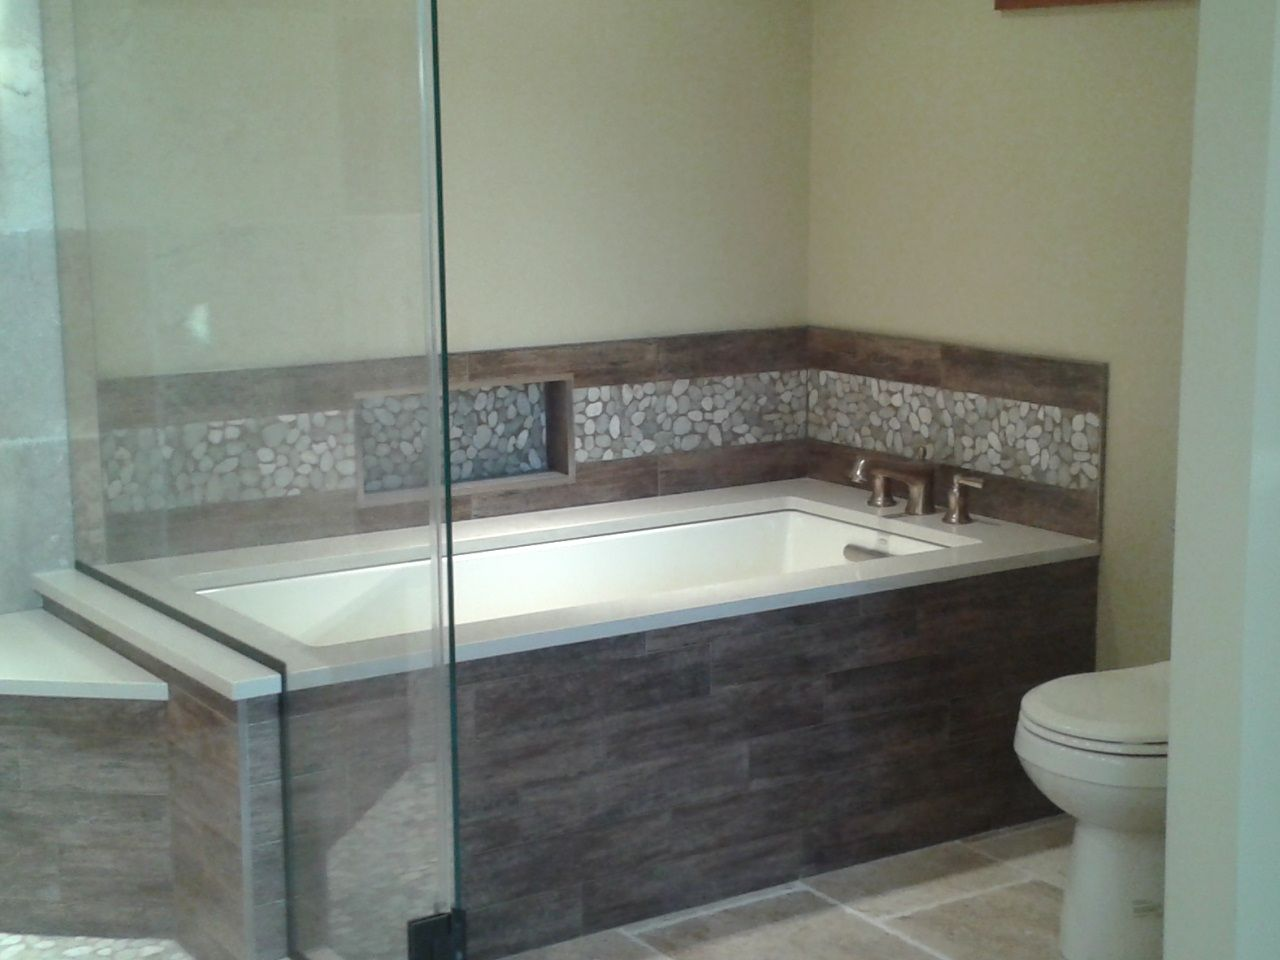 Wood tile with pebble tile border Tub is undermounted with a solid ...